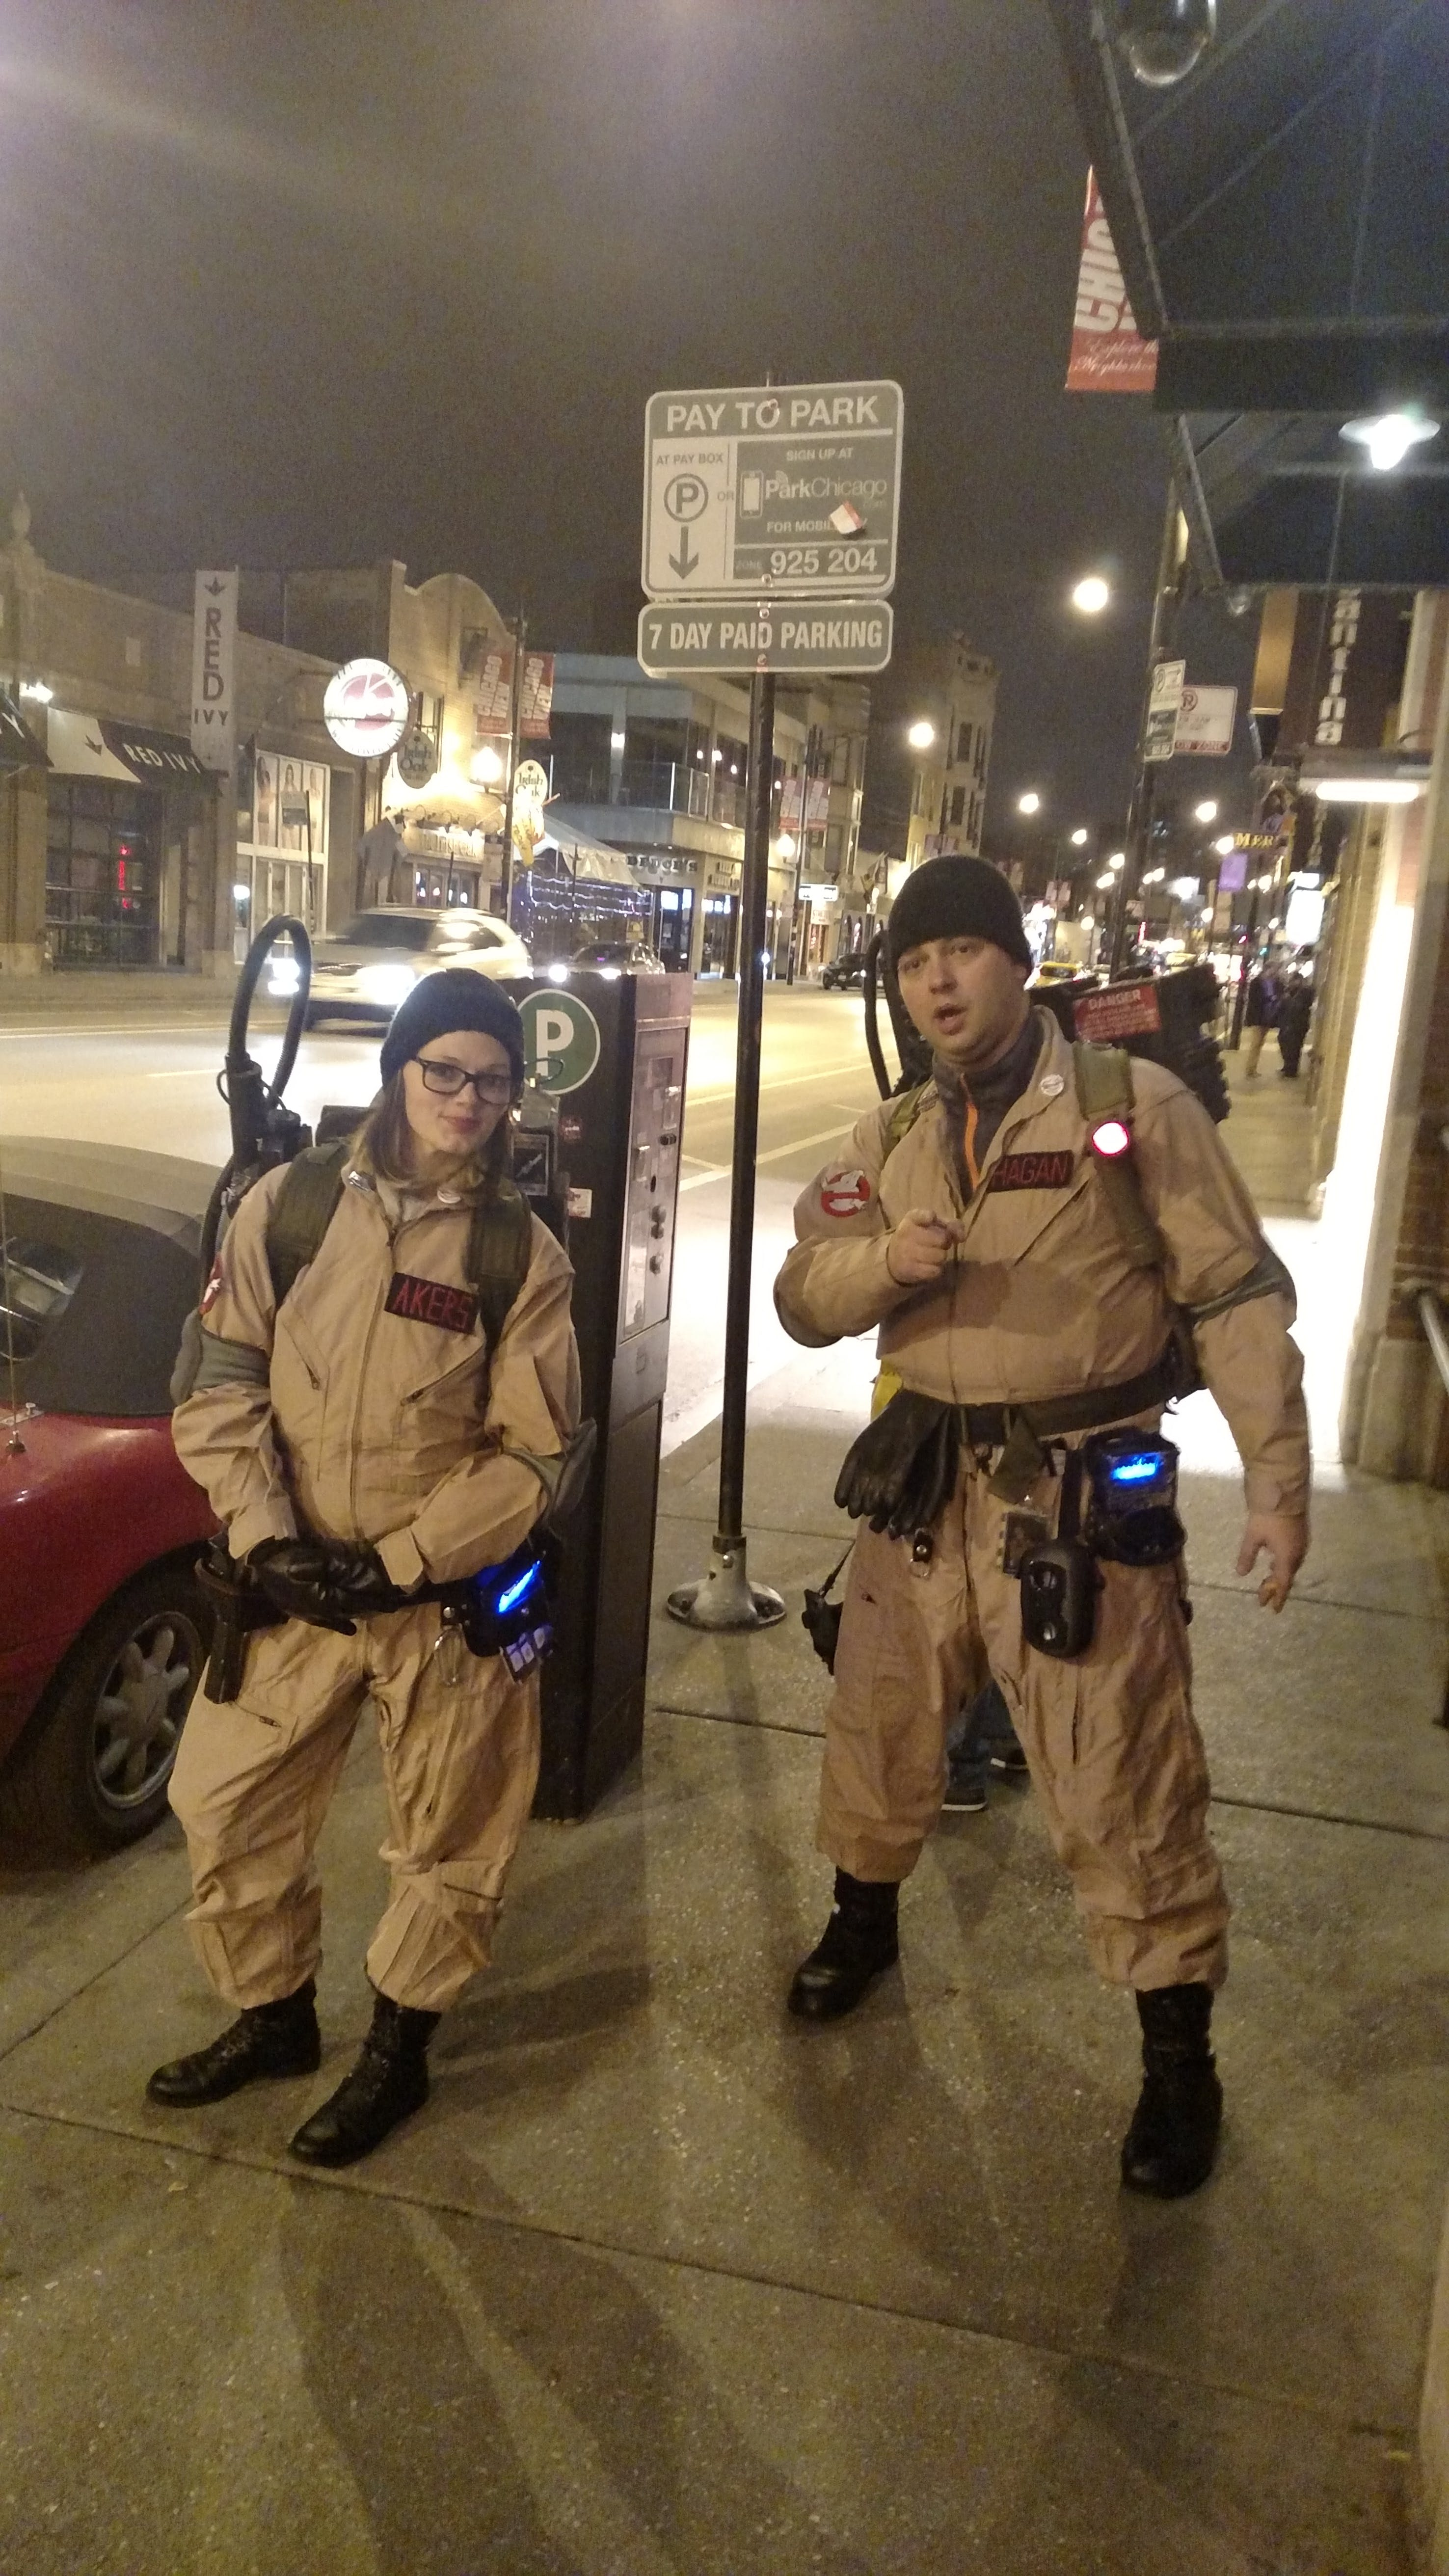 Free stock photo of Fake Ghostbusters